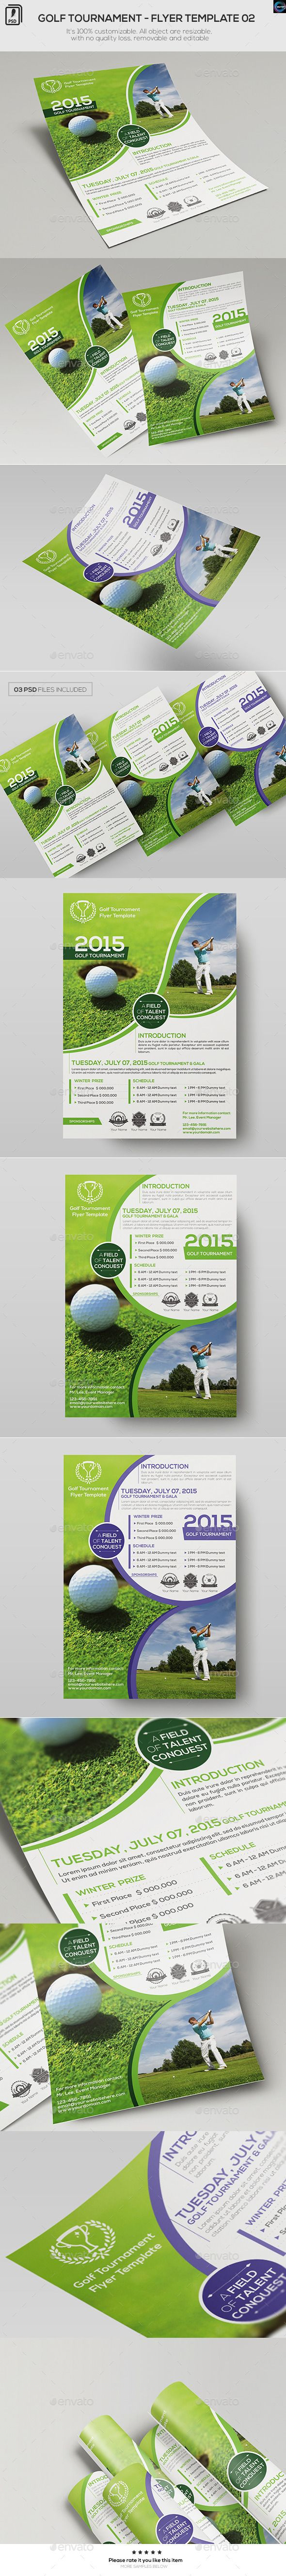 28 best golf tournament images on pinterest golf outing golf